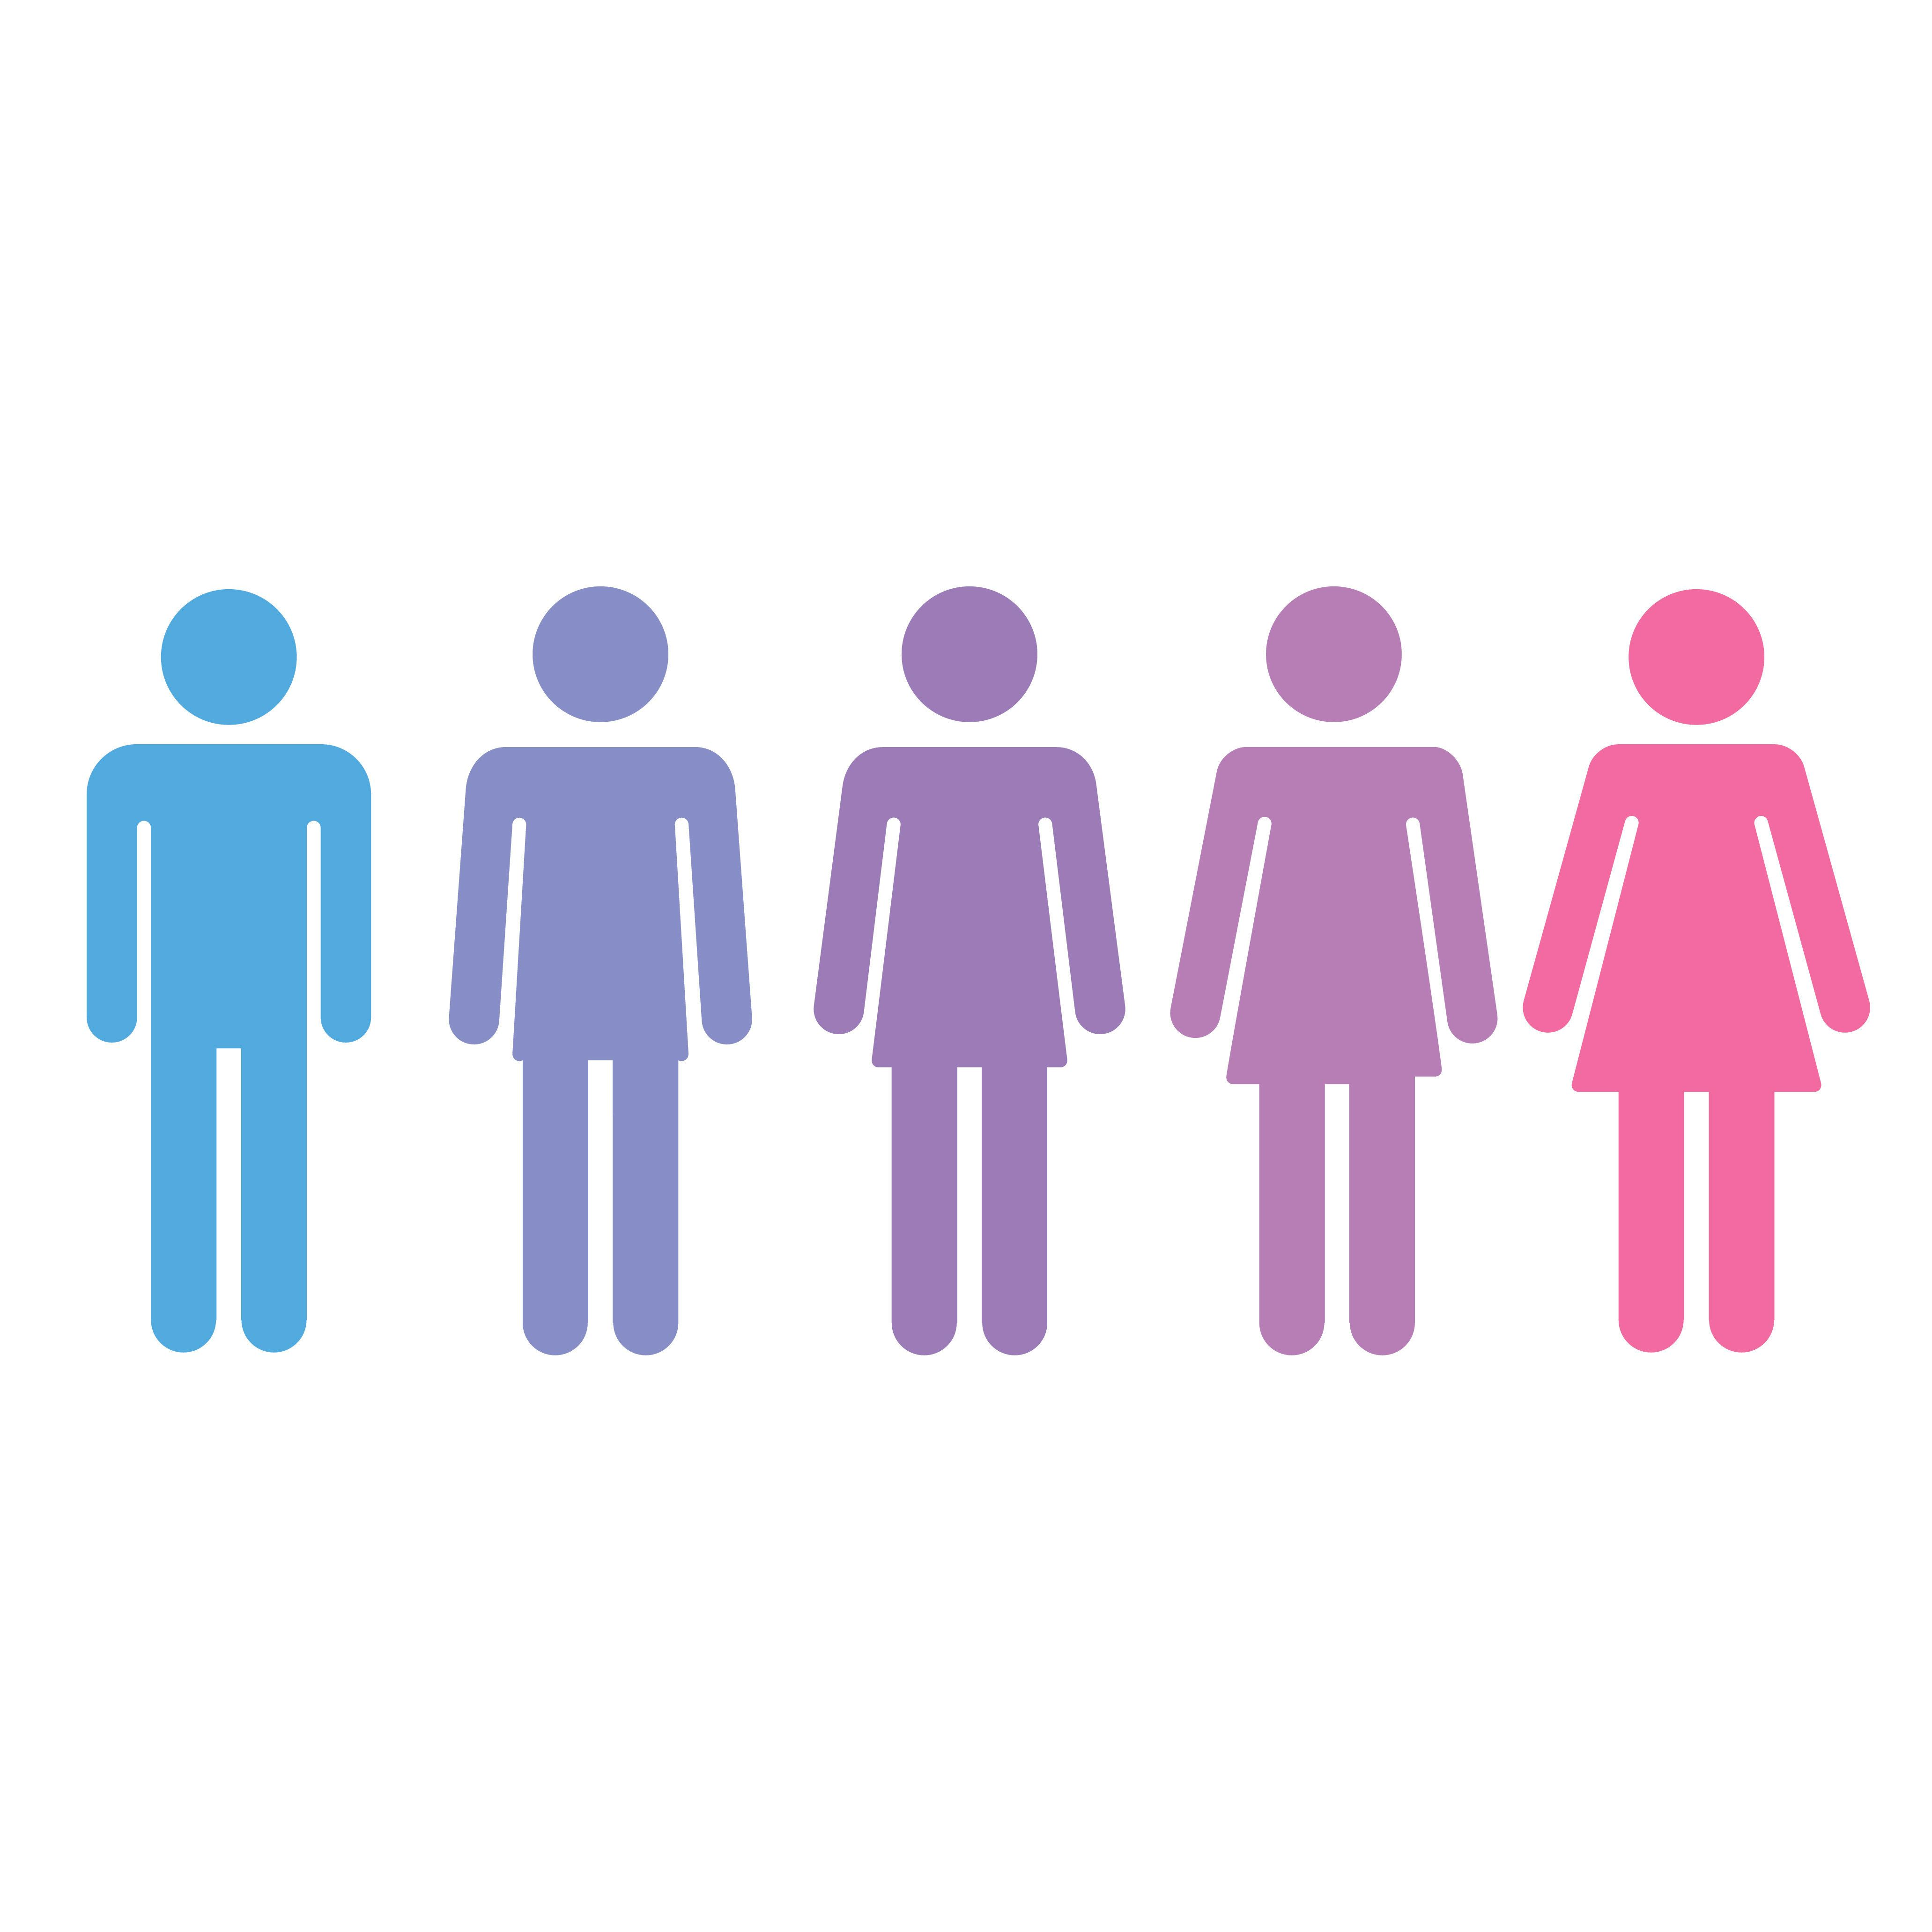 We Really Need To Stop Acting Like Assholes About Gender Identity